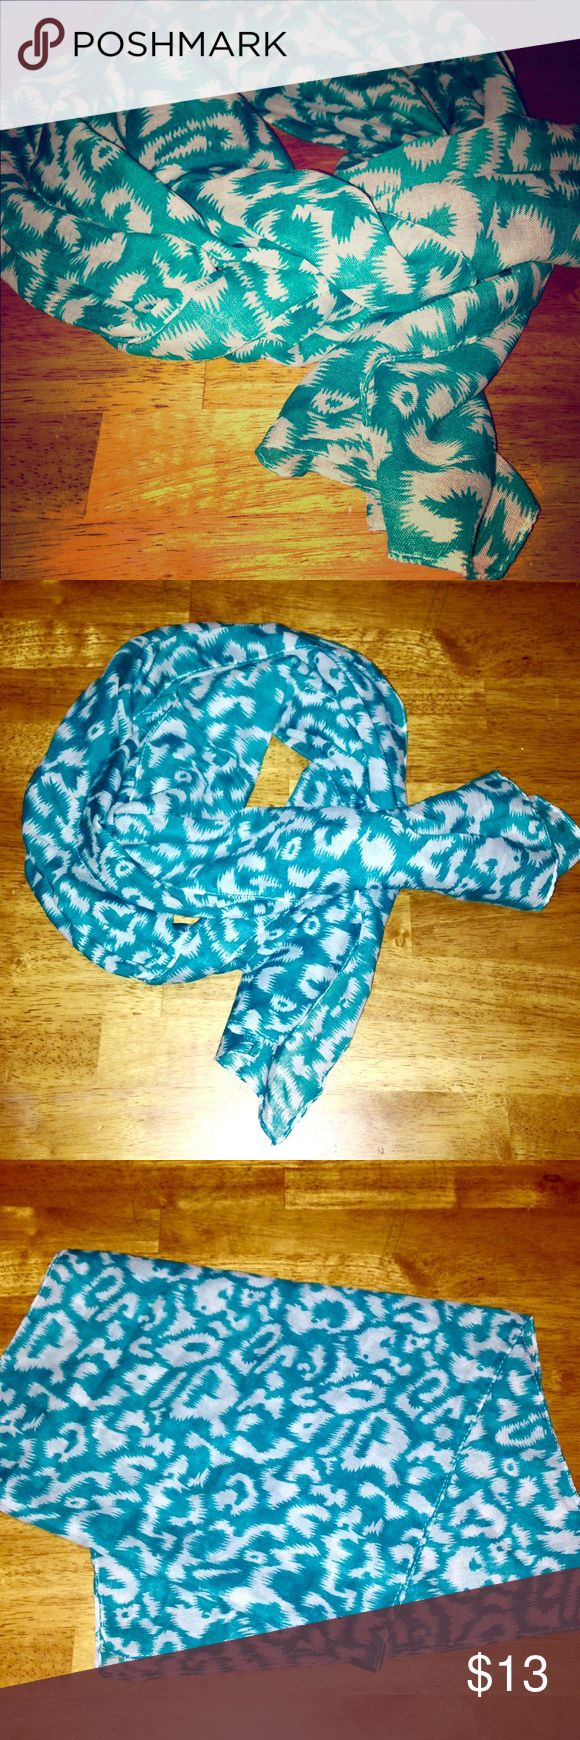 NWOT • Women's Turquoise & White Leopard Scarf 🐆 NWOT • Women's Turquoise & White Leopard Scarf 🐆 Very Light & Airy scarf, great to dress up any outfit. Nice for a Spring or Summer day!! ☀️ Accessories Scarves & Wraps